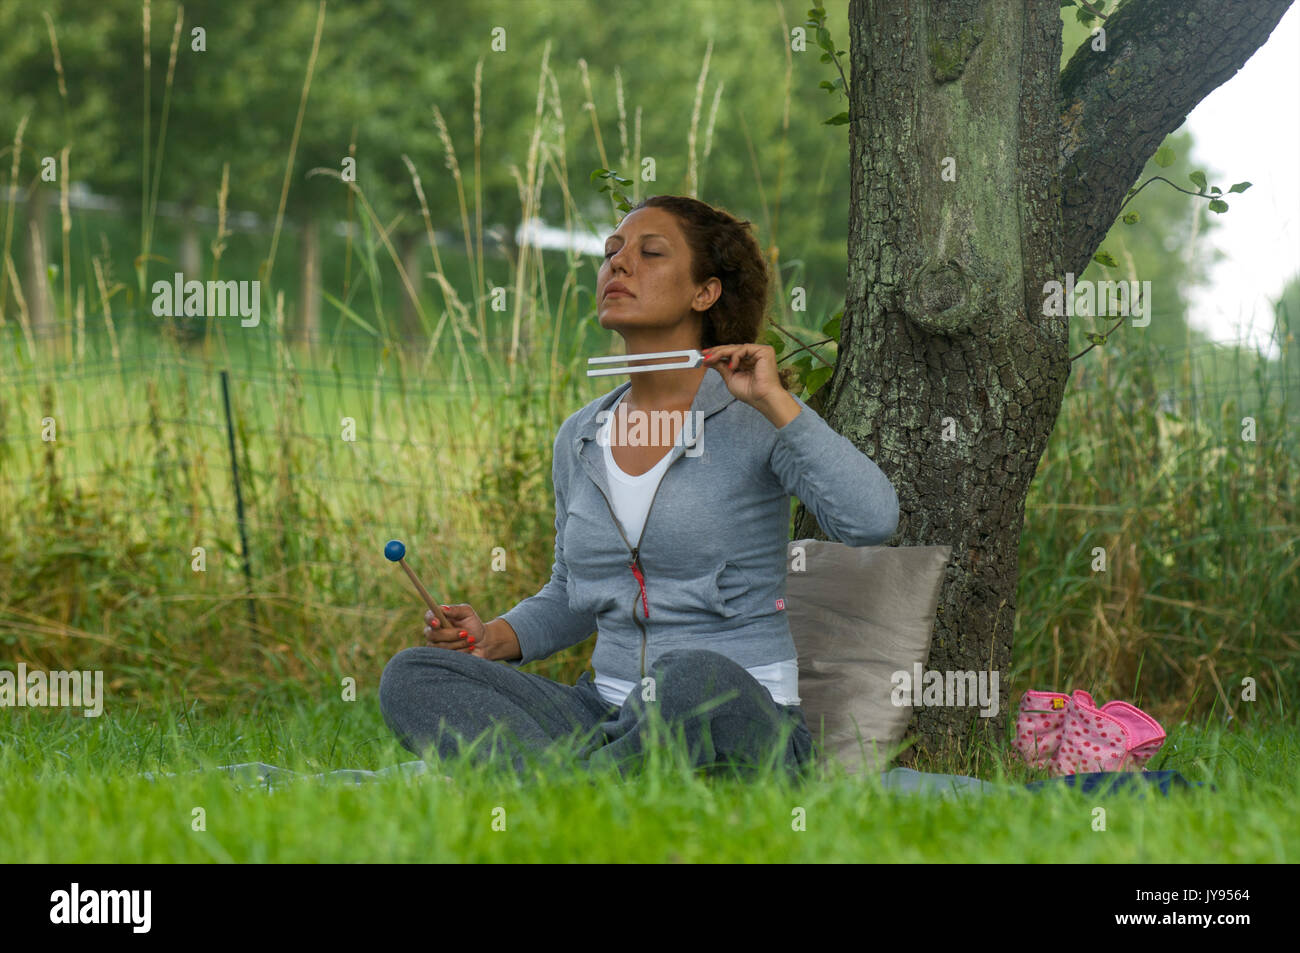 Woman working on her crown chakra and third eye chakra with a tuning fork to create balance through sound and vibration - Stock Image